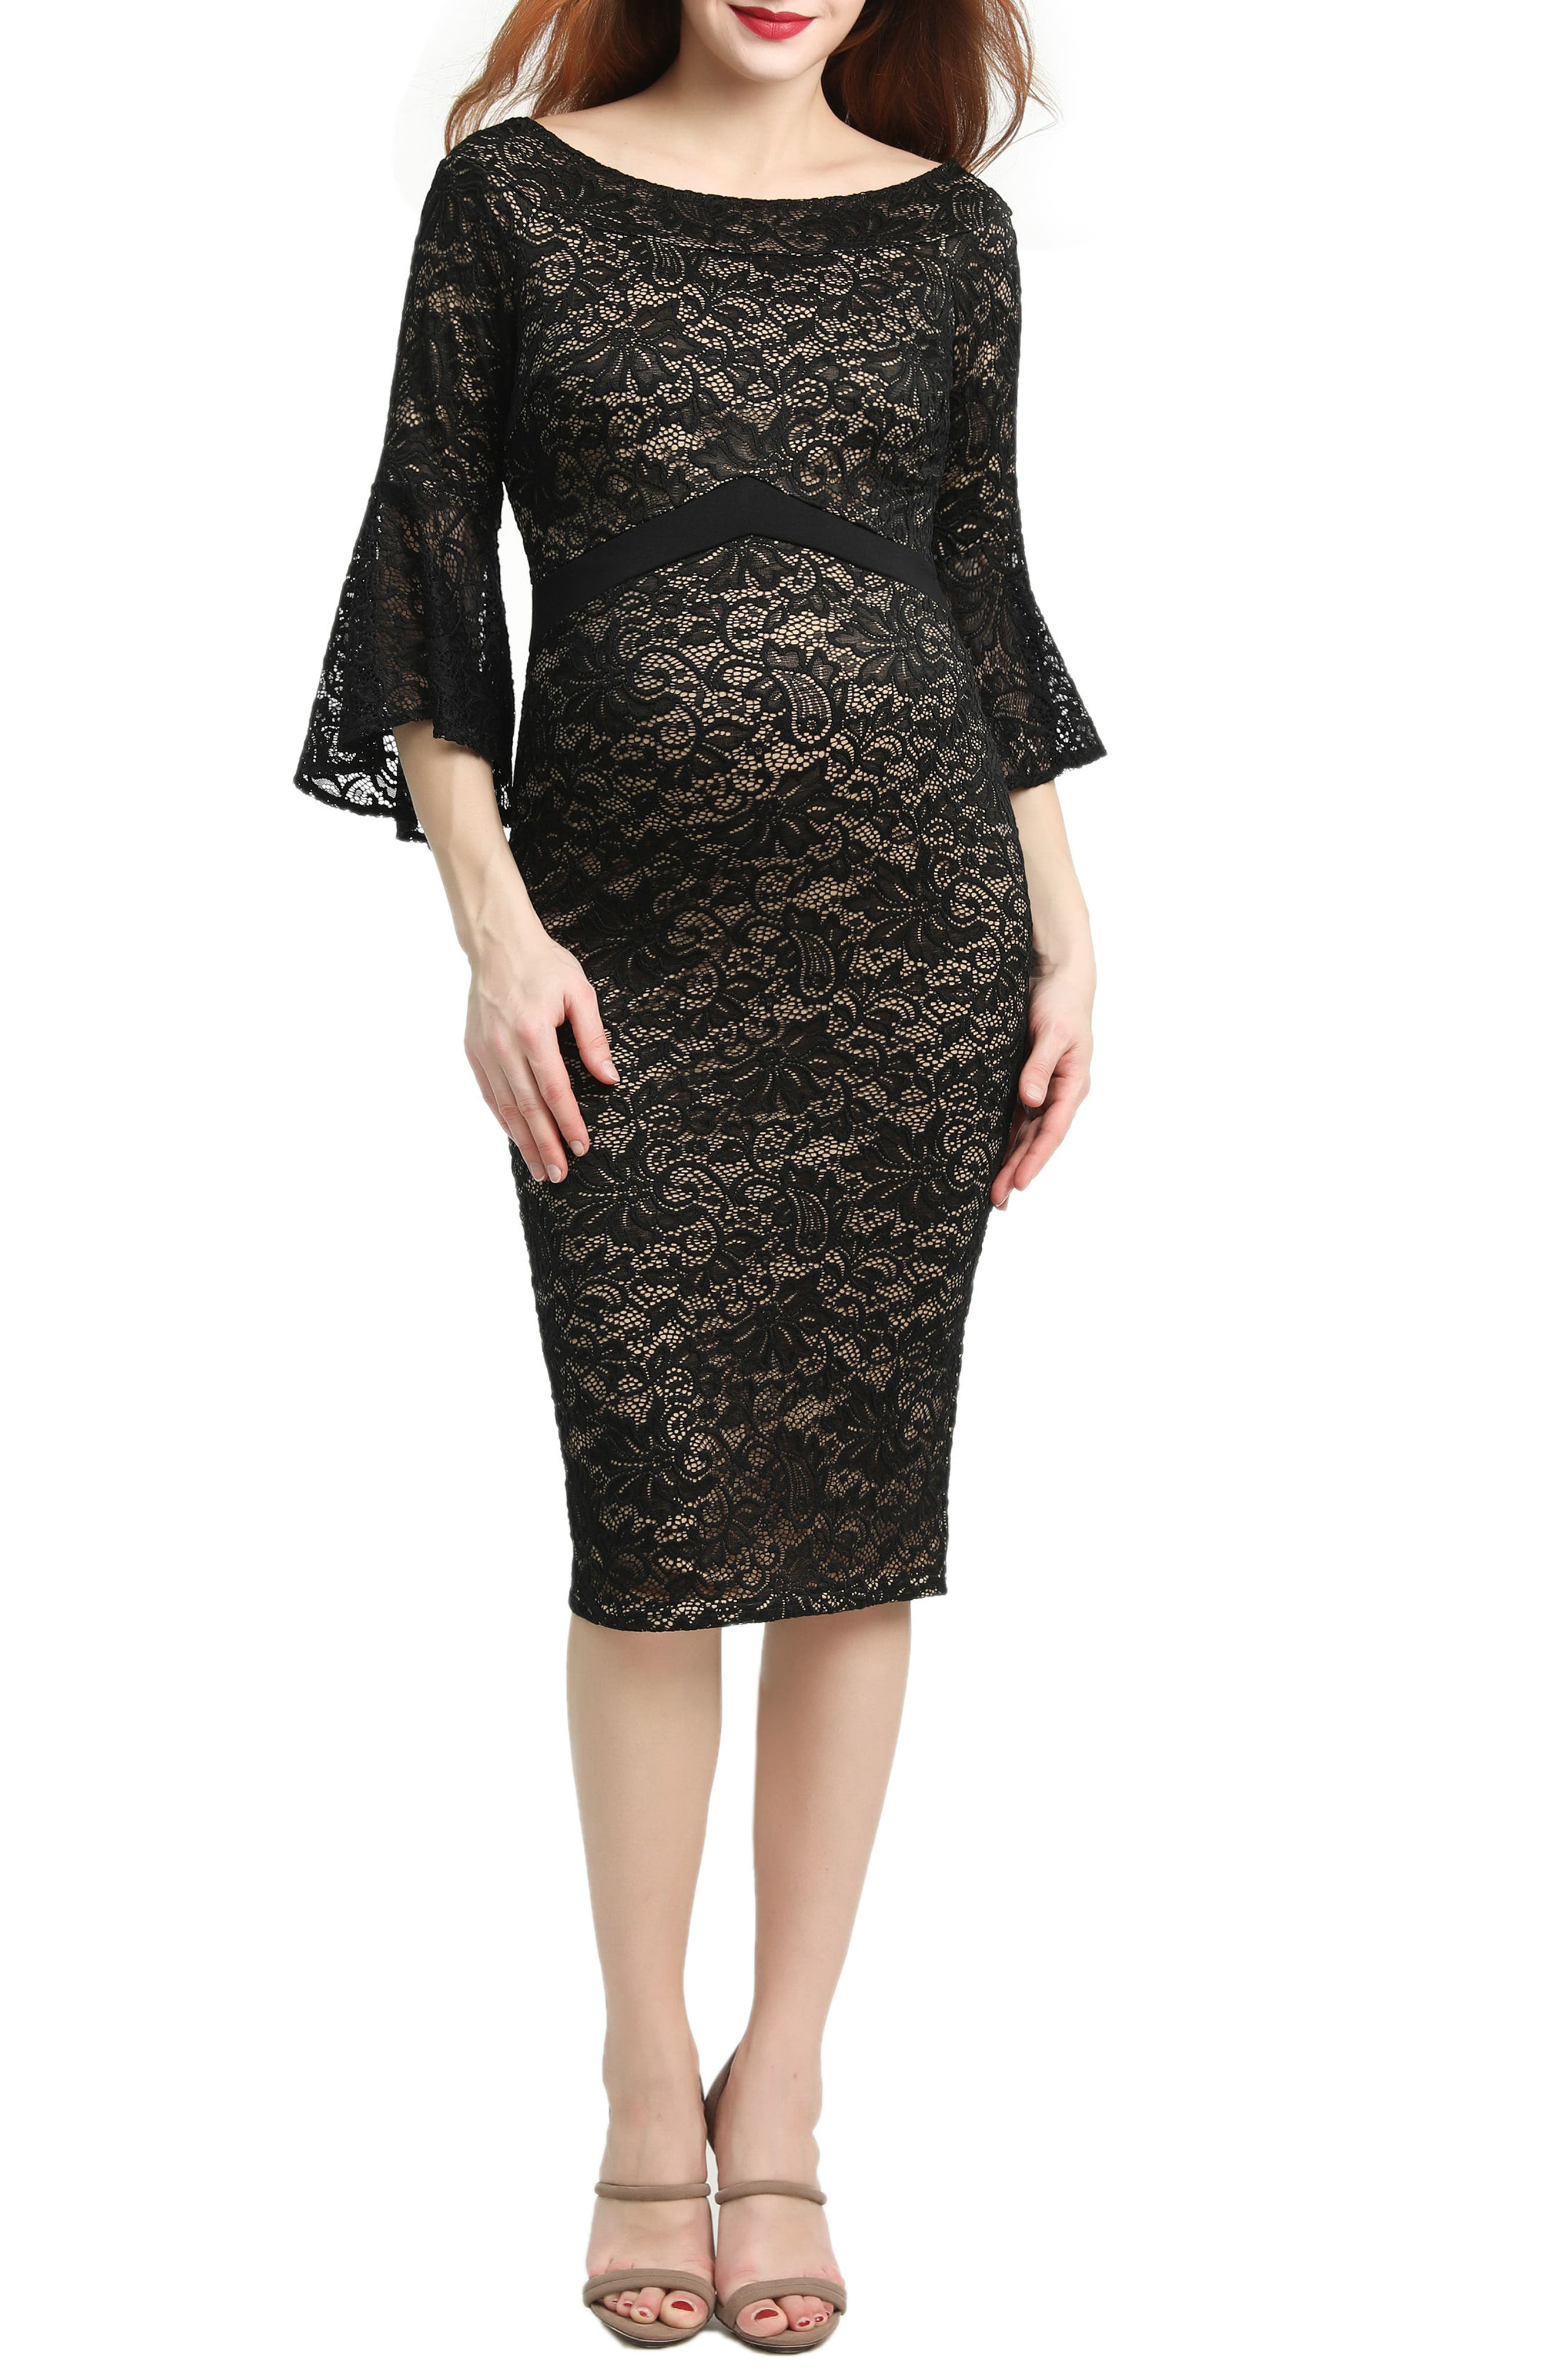 Strategic paneling accentuates the bump-flattering style of a lace body-con dress updated with flared three-quarter sleeves. Style Name: Kimi And Kai Lena Maternity Body-Con Dress. Style Number: 5497558. Available in stores.